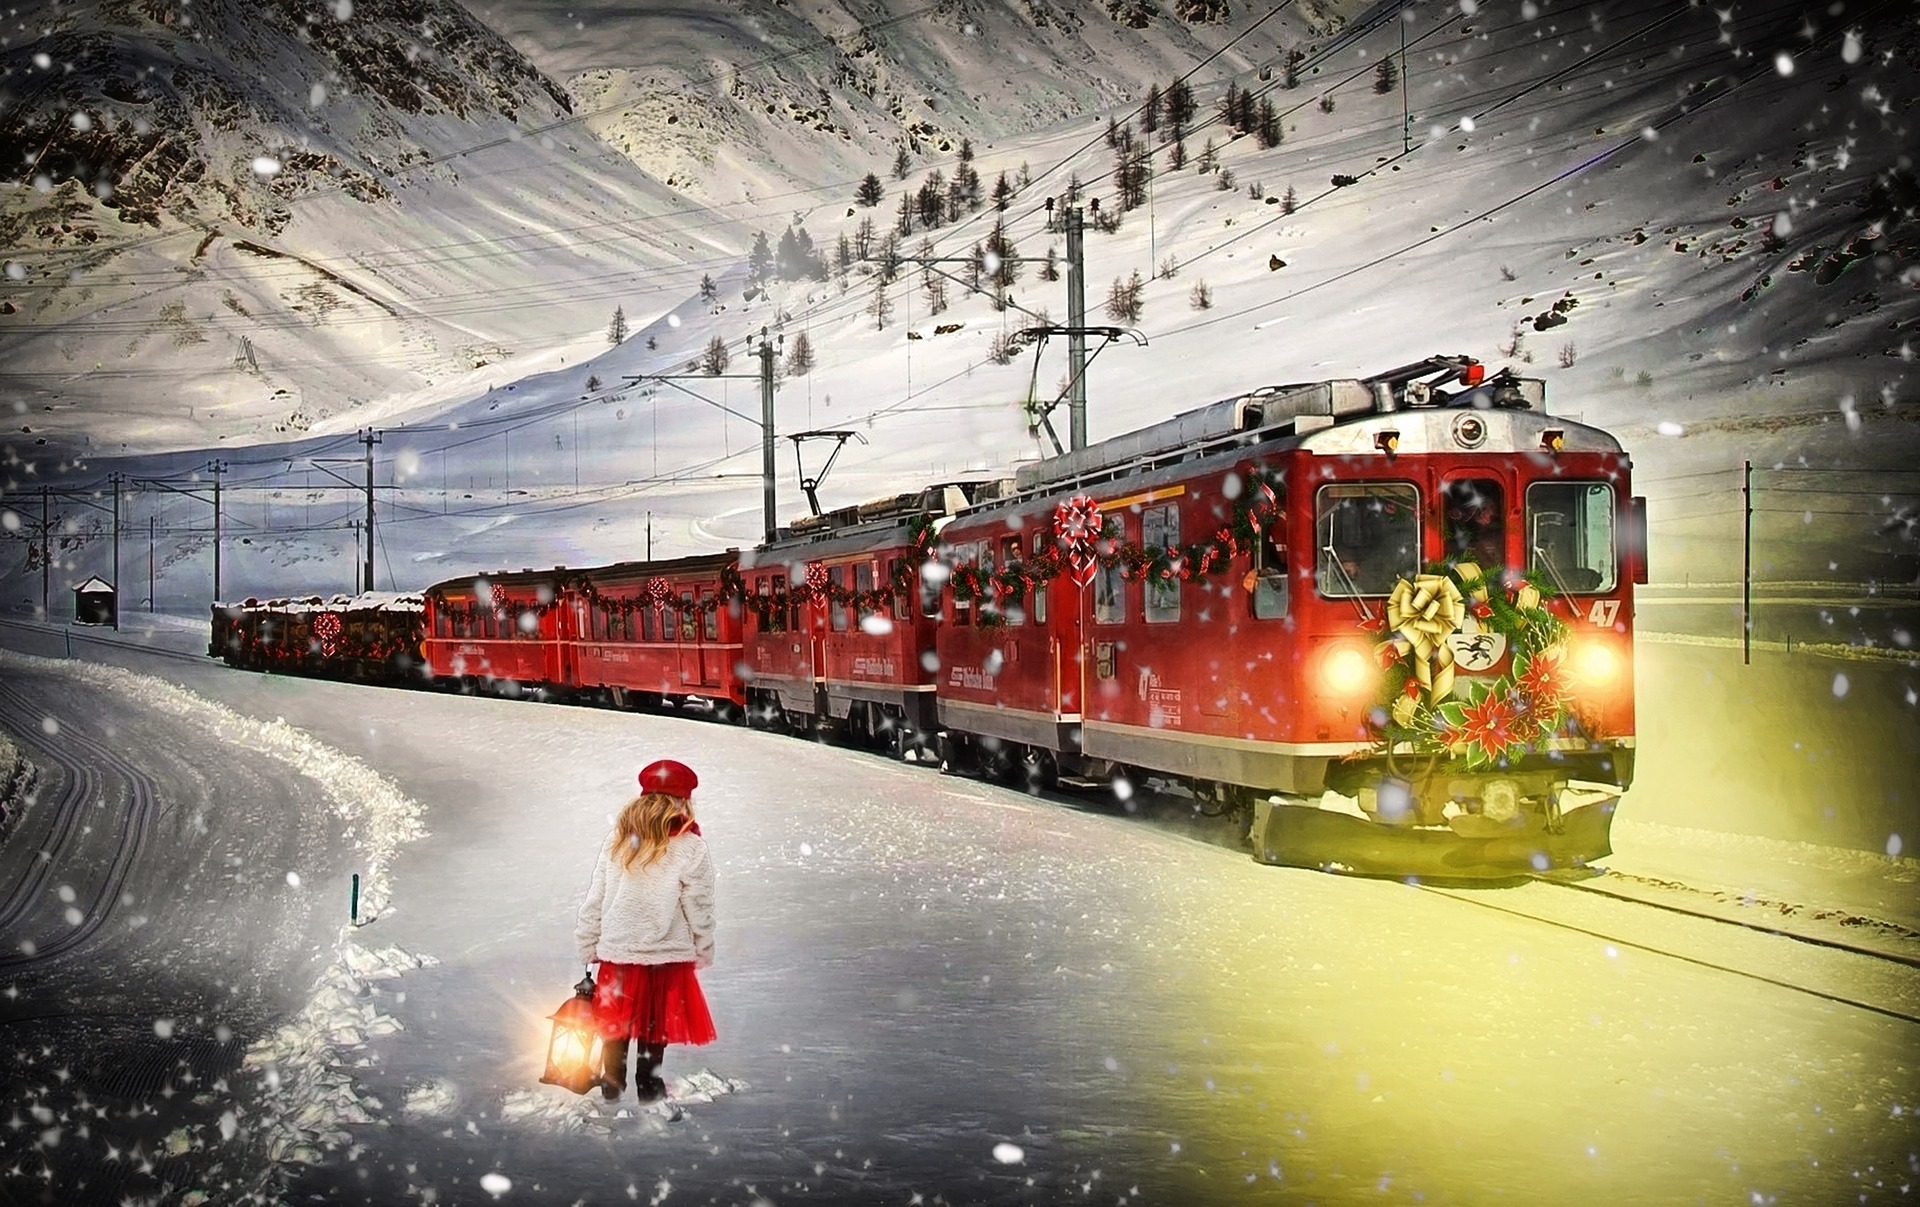 Polar Express by Jill111 at Pixabay